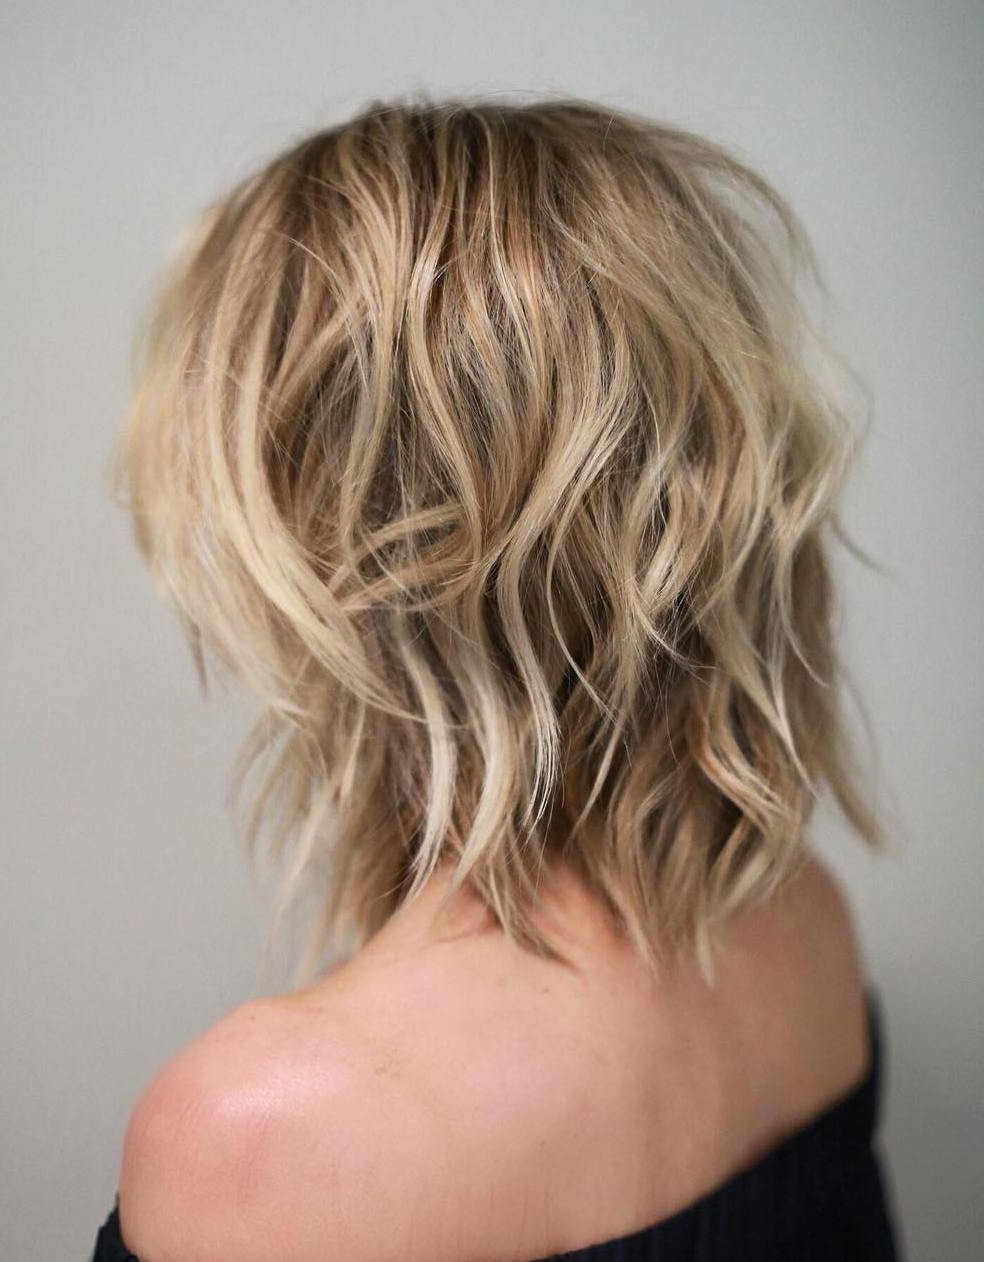 Latest Shoulder Length Layered Hairstyles Pertaining To Medium Hairstyles And Haircuts For Shoulder Length Hair In 2018 — Trhs (Gallery 12 of 20)